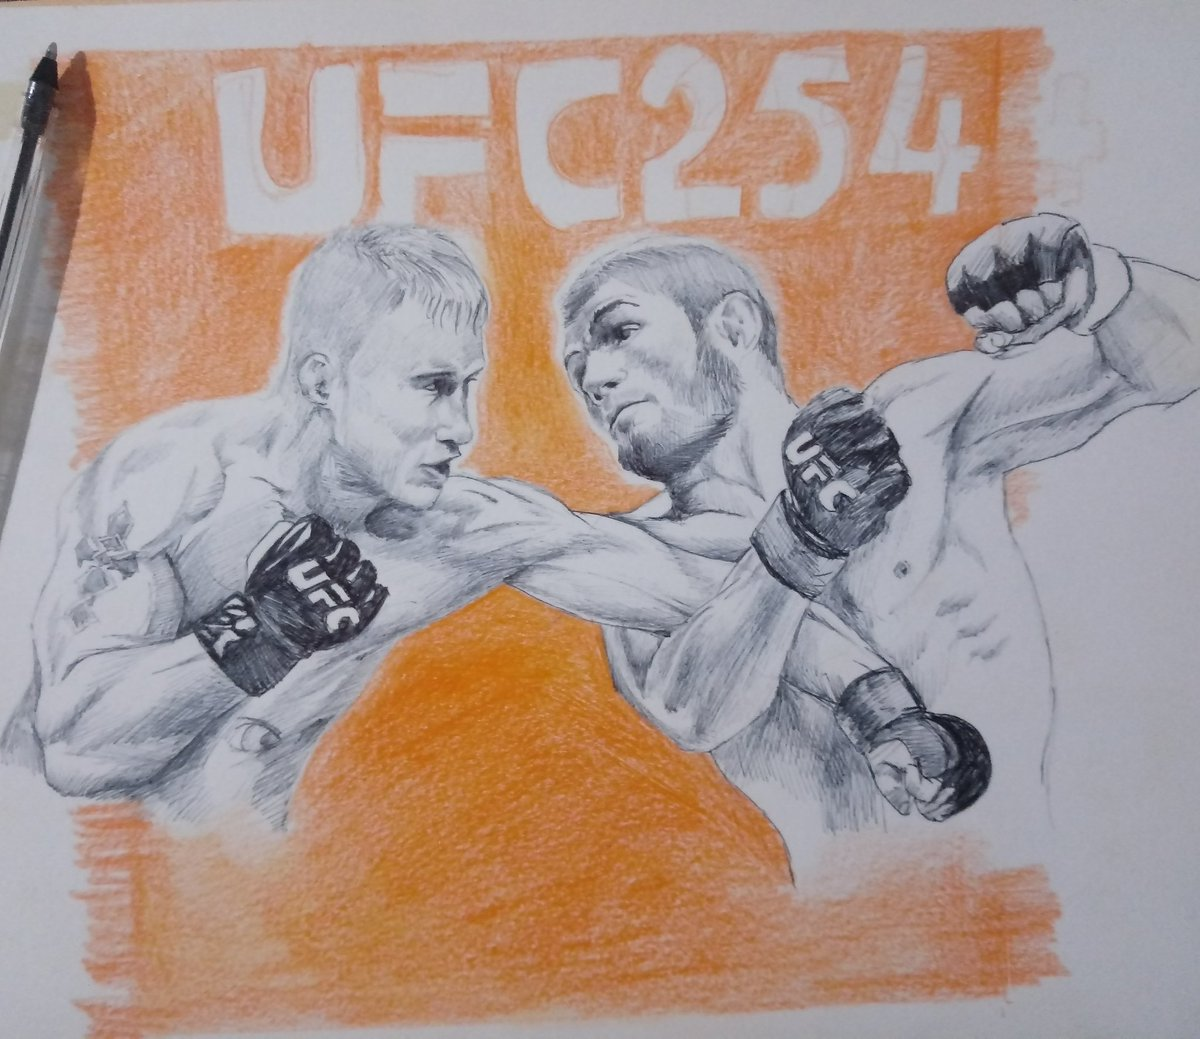 The fight I waited @TeamKhabib vs @Justin_Gaethje. The event  #ufc254 it will be 🔥🔥 It's a quick #drawing I hope you like it 😅😅 #24ottobre #UFCFightIsland6 #ufc254live #khabibvsgaethje #khabibgaethje #arte #art #Pencildrawing #pencilart #pencilsketch #Sketchドロー #sketch https://t.co/u0OnAdjXC5